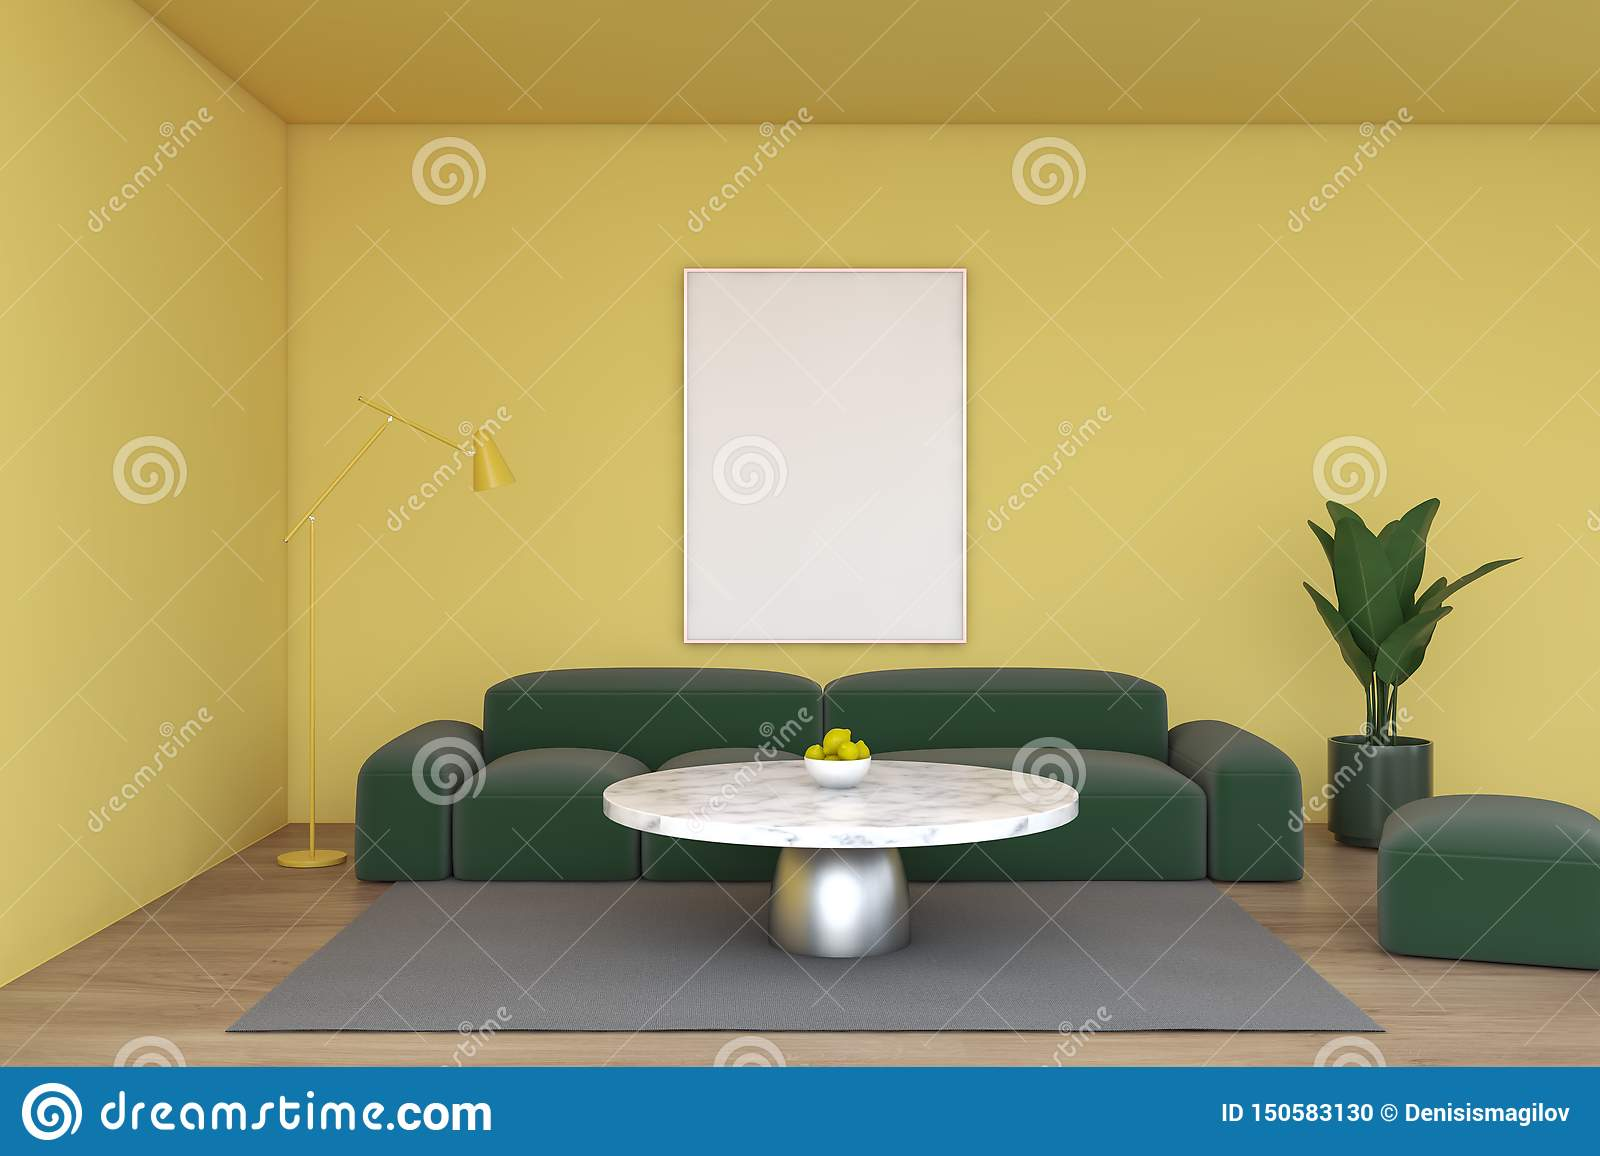 Yellow Living Room Green Sofa And Poster Stock Illustration Illustration Of Interior Living 150583130,Teenager Easy Simple Mehndi Designs For Kids Front Hand